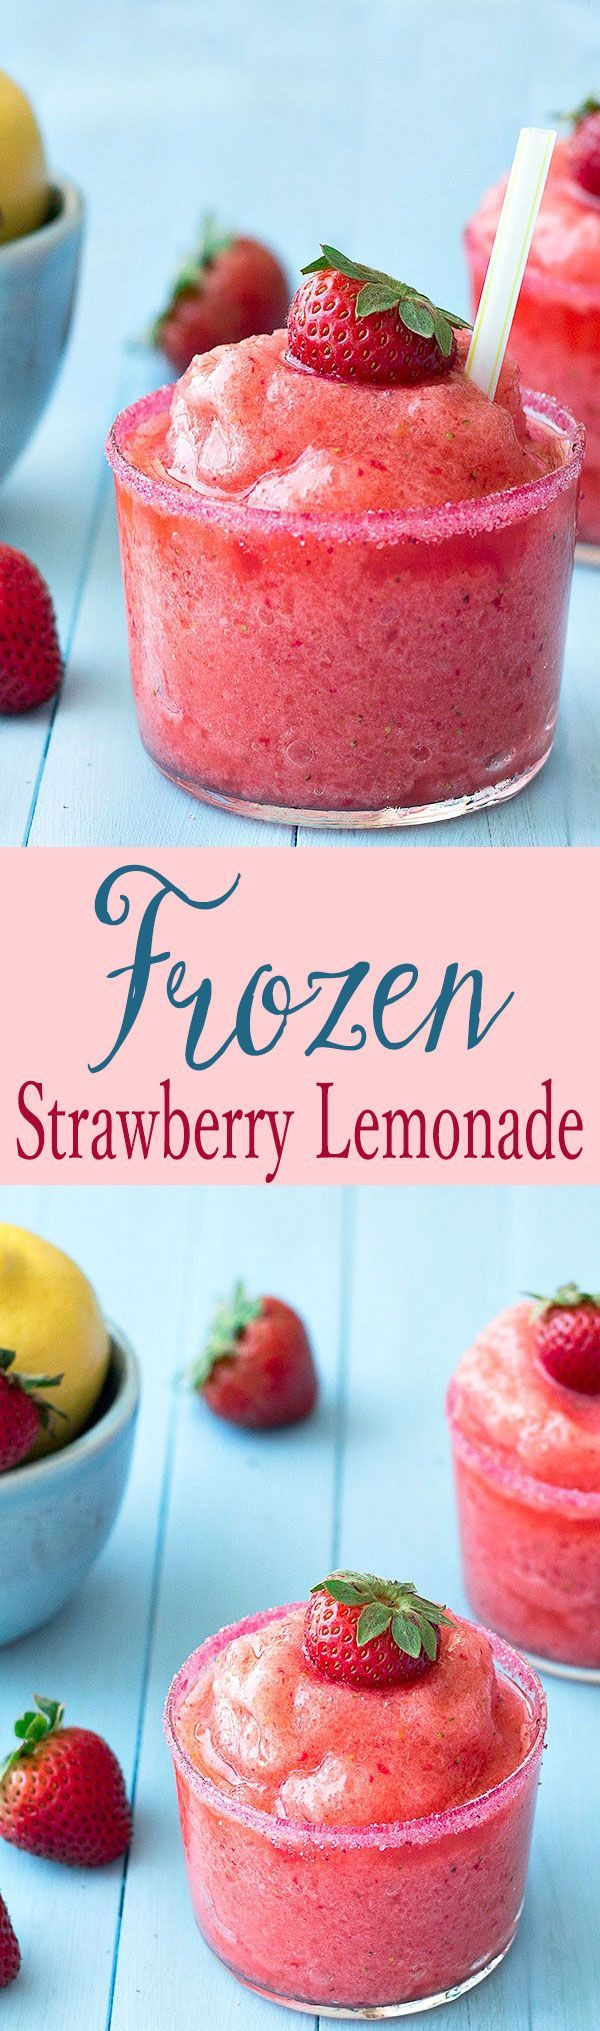 This frozen strawberry lemonade is so easy to make, full of fresh strawberries and tart lemons.